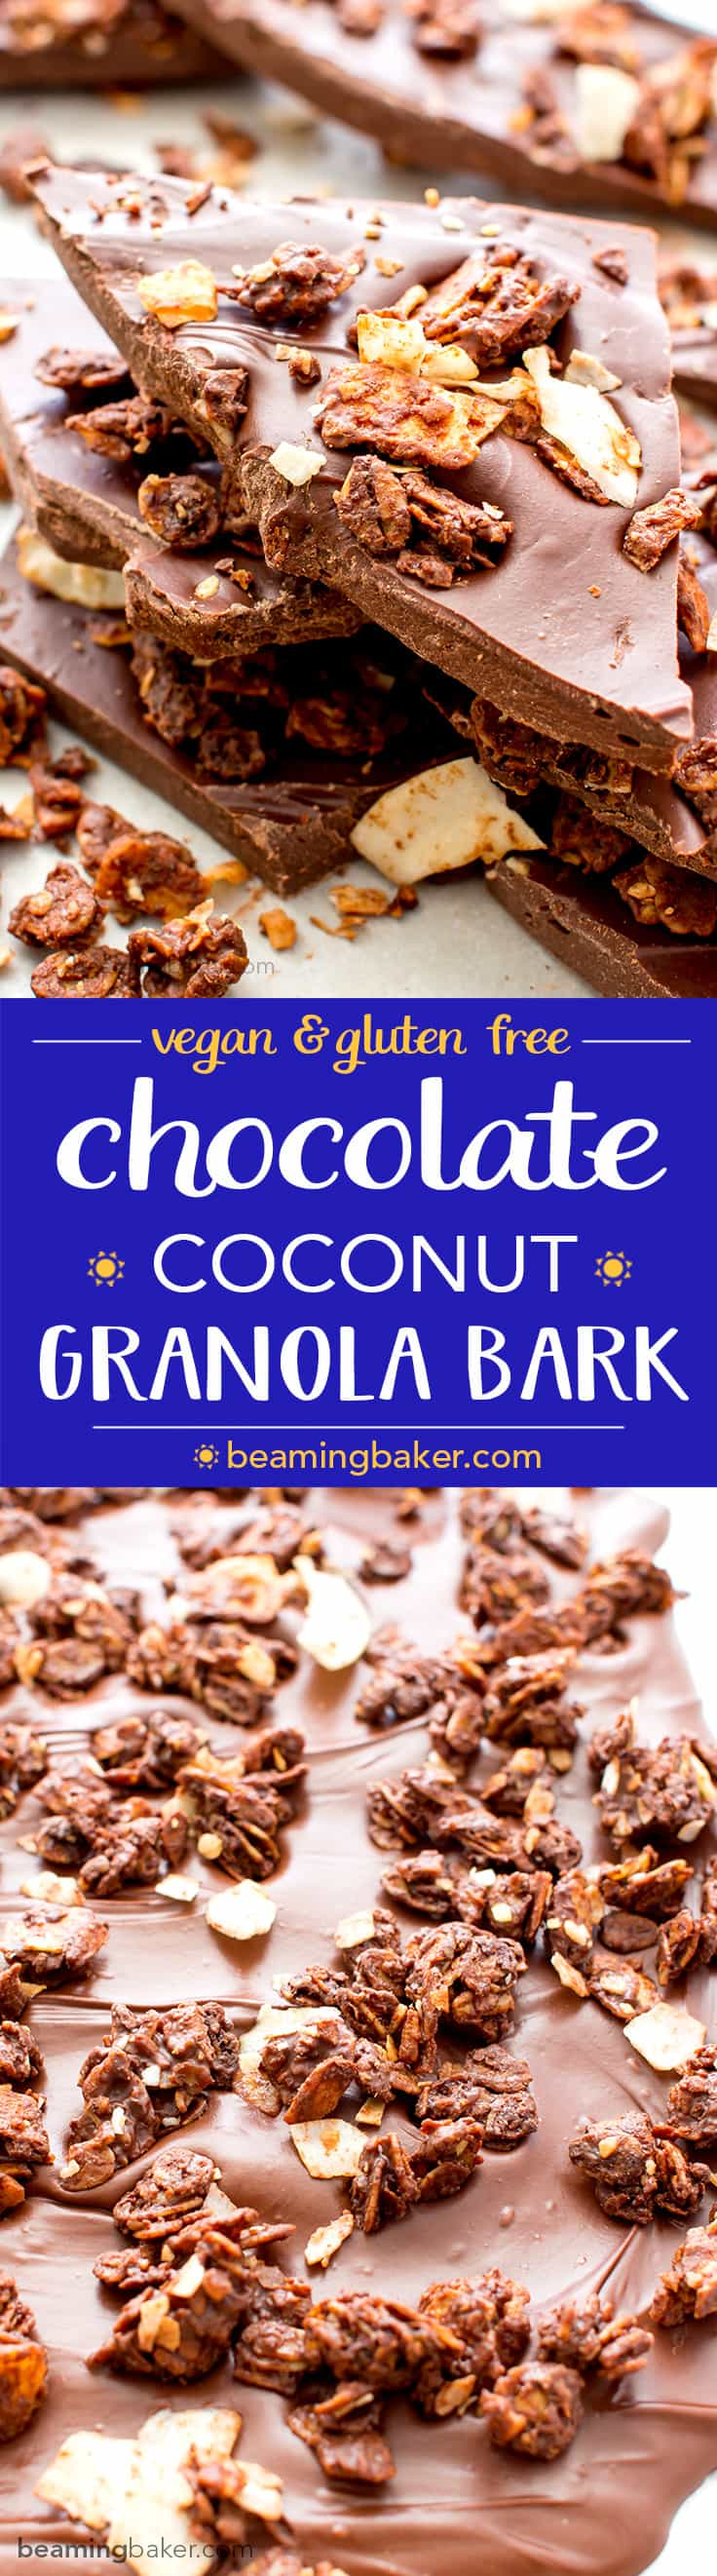 Chocolate Coconut Granola Bark (V+GF): Richly indulgent, heavenly chocolate covered coconut granola enrobed in a thick layer of chocolate. BeamingBaker.com #Vegan #GlutenFree